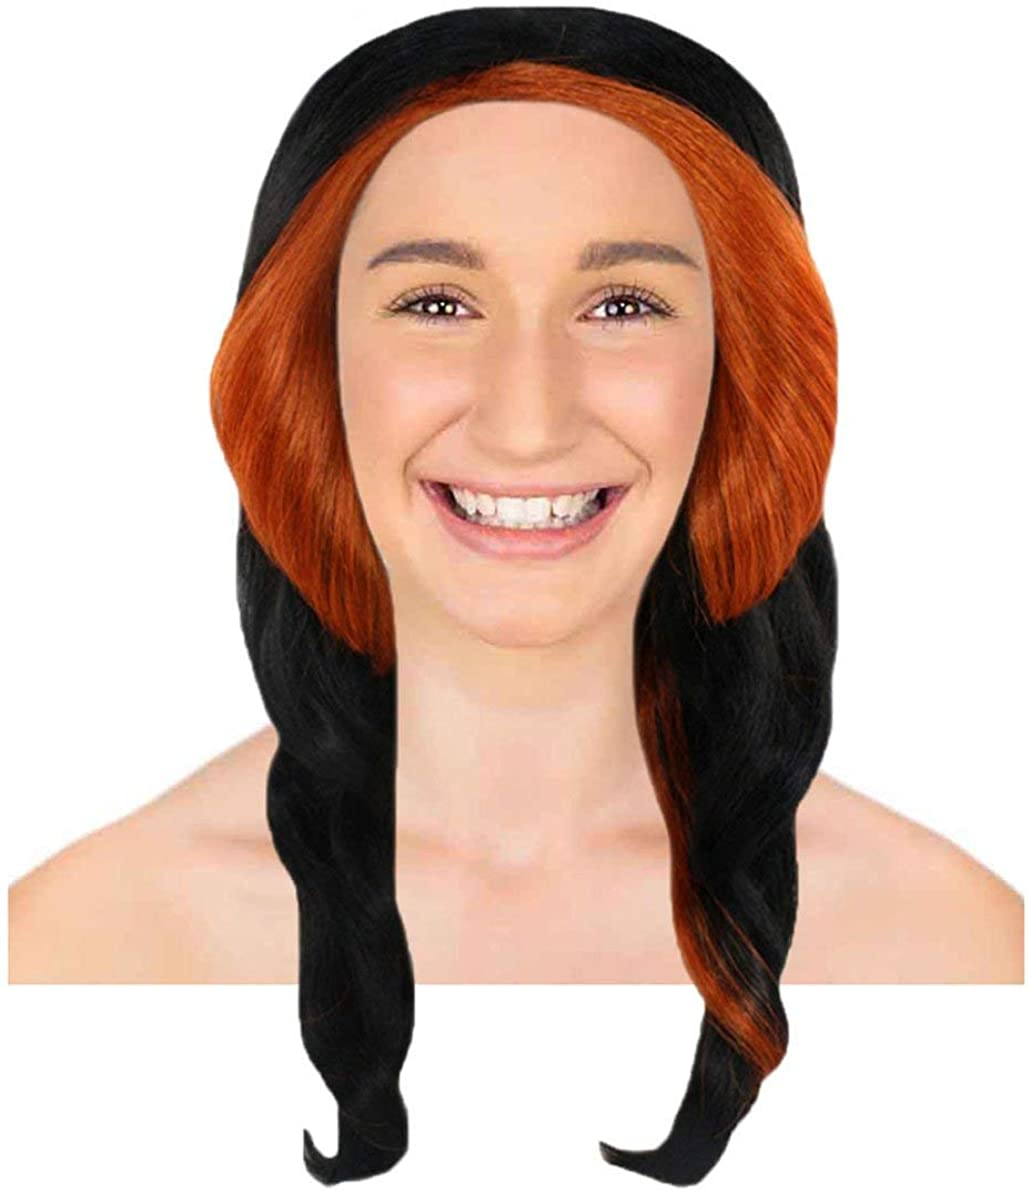 Monster High Skelita Calaveras Wig | Black and Orange TV/Movie Wigs